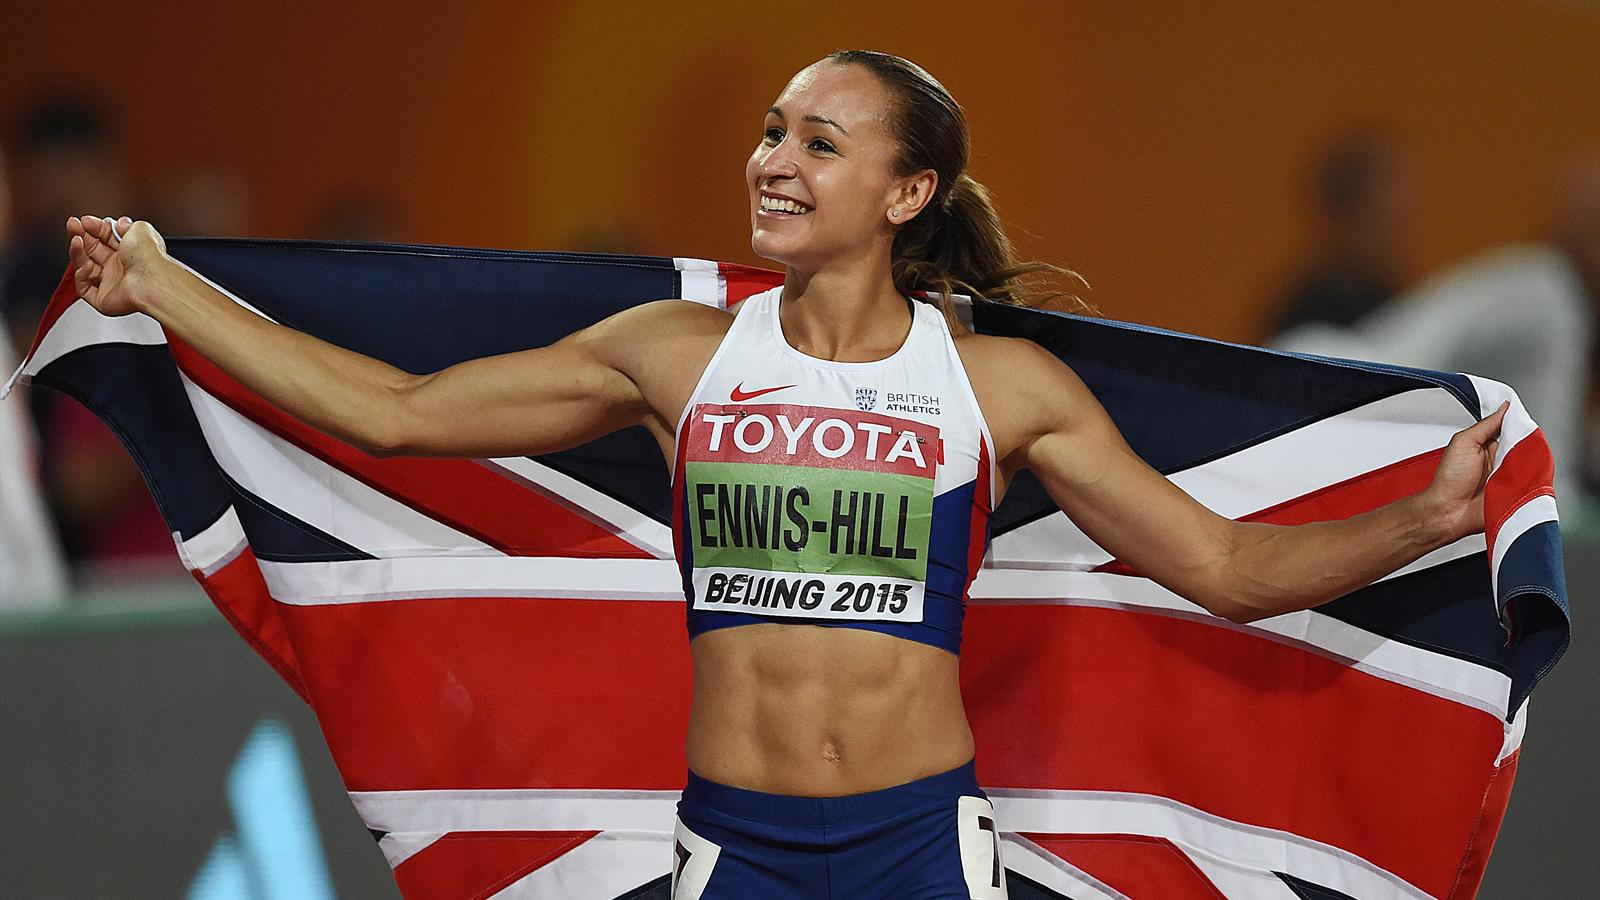 Why Jessica Ennis-Hill has to win Sports Personality of the Year - All Sports - Eurosport British